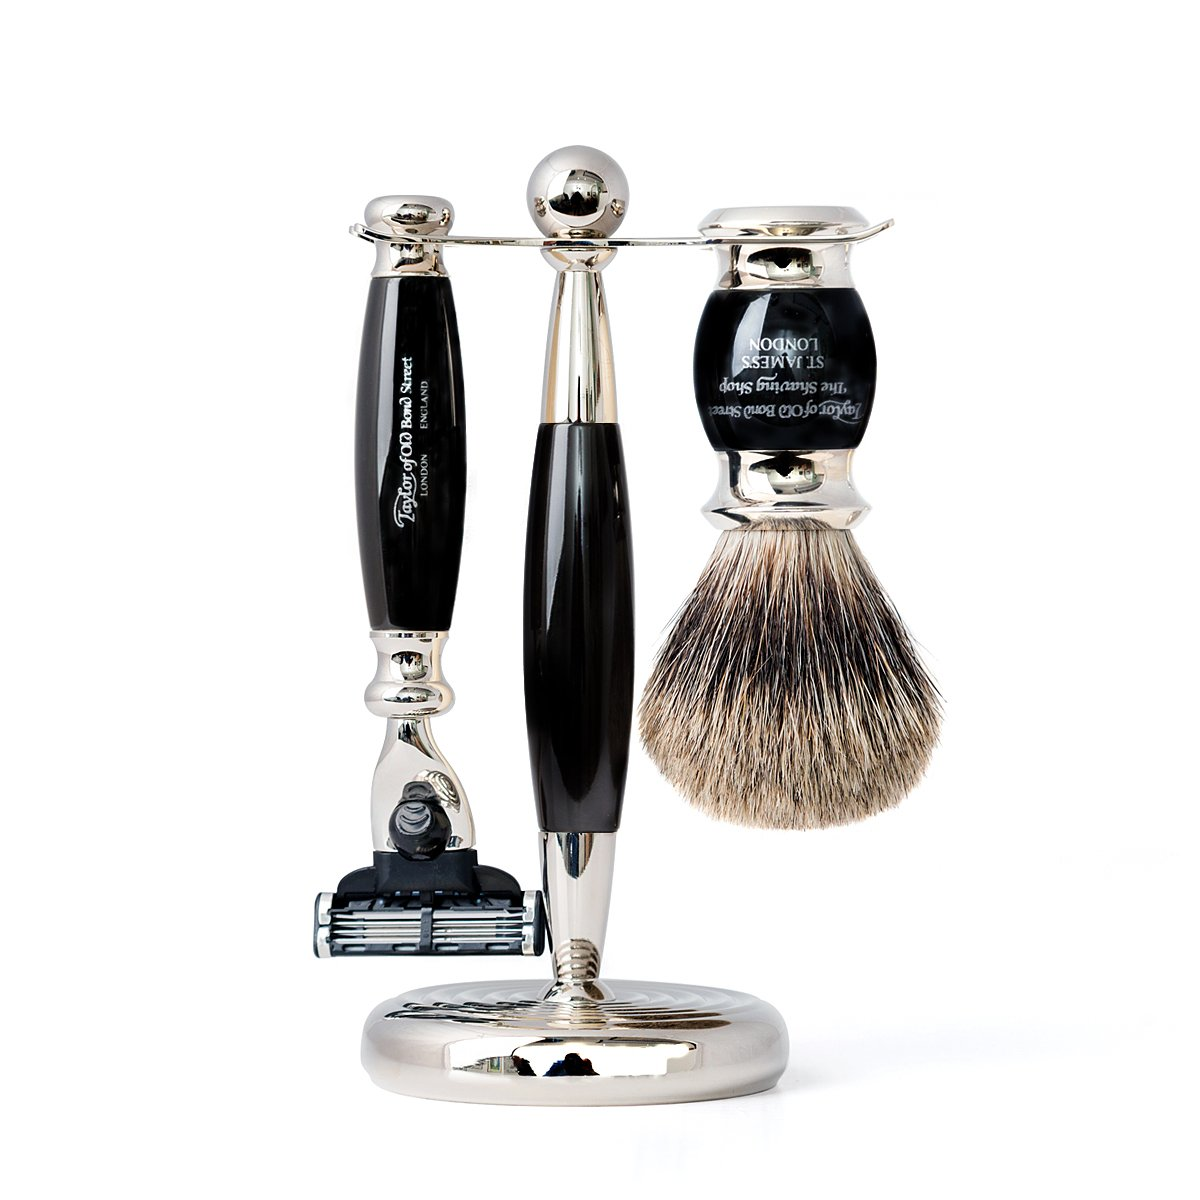 Black Pure Mach3 Edwardian Shaving Set